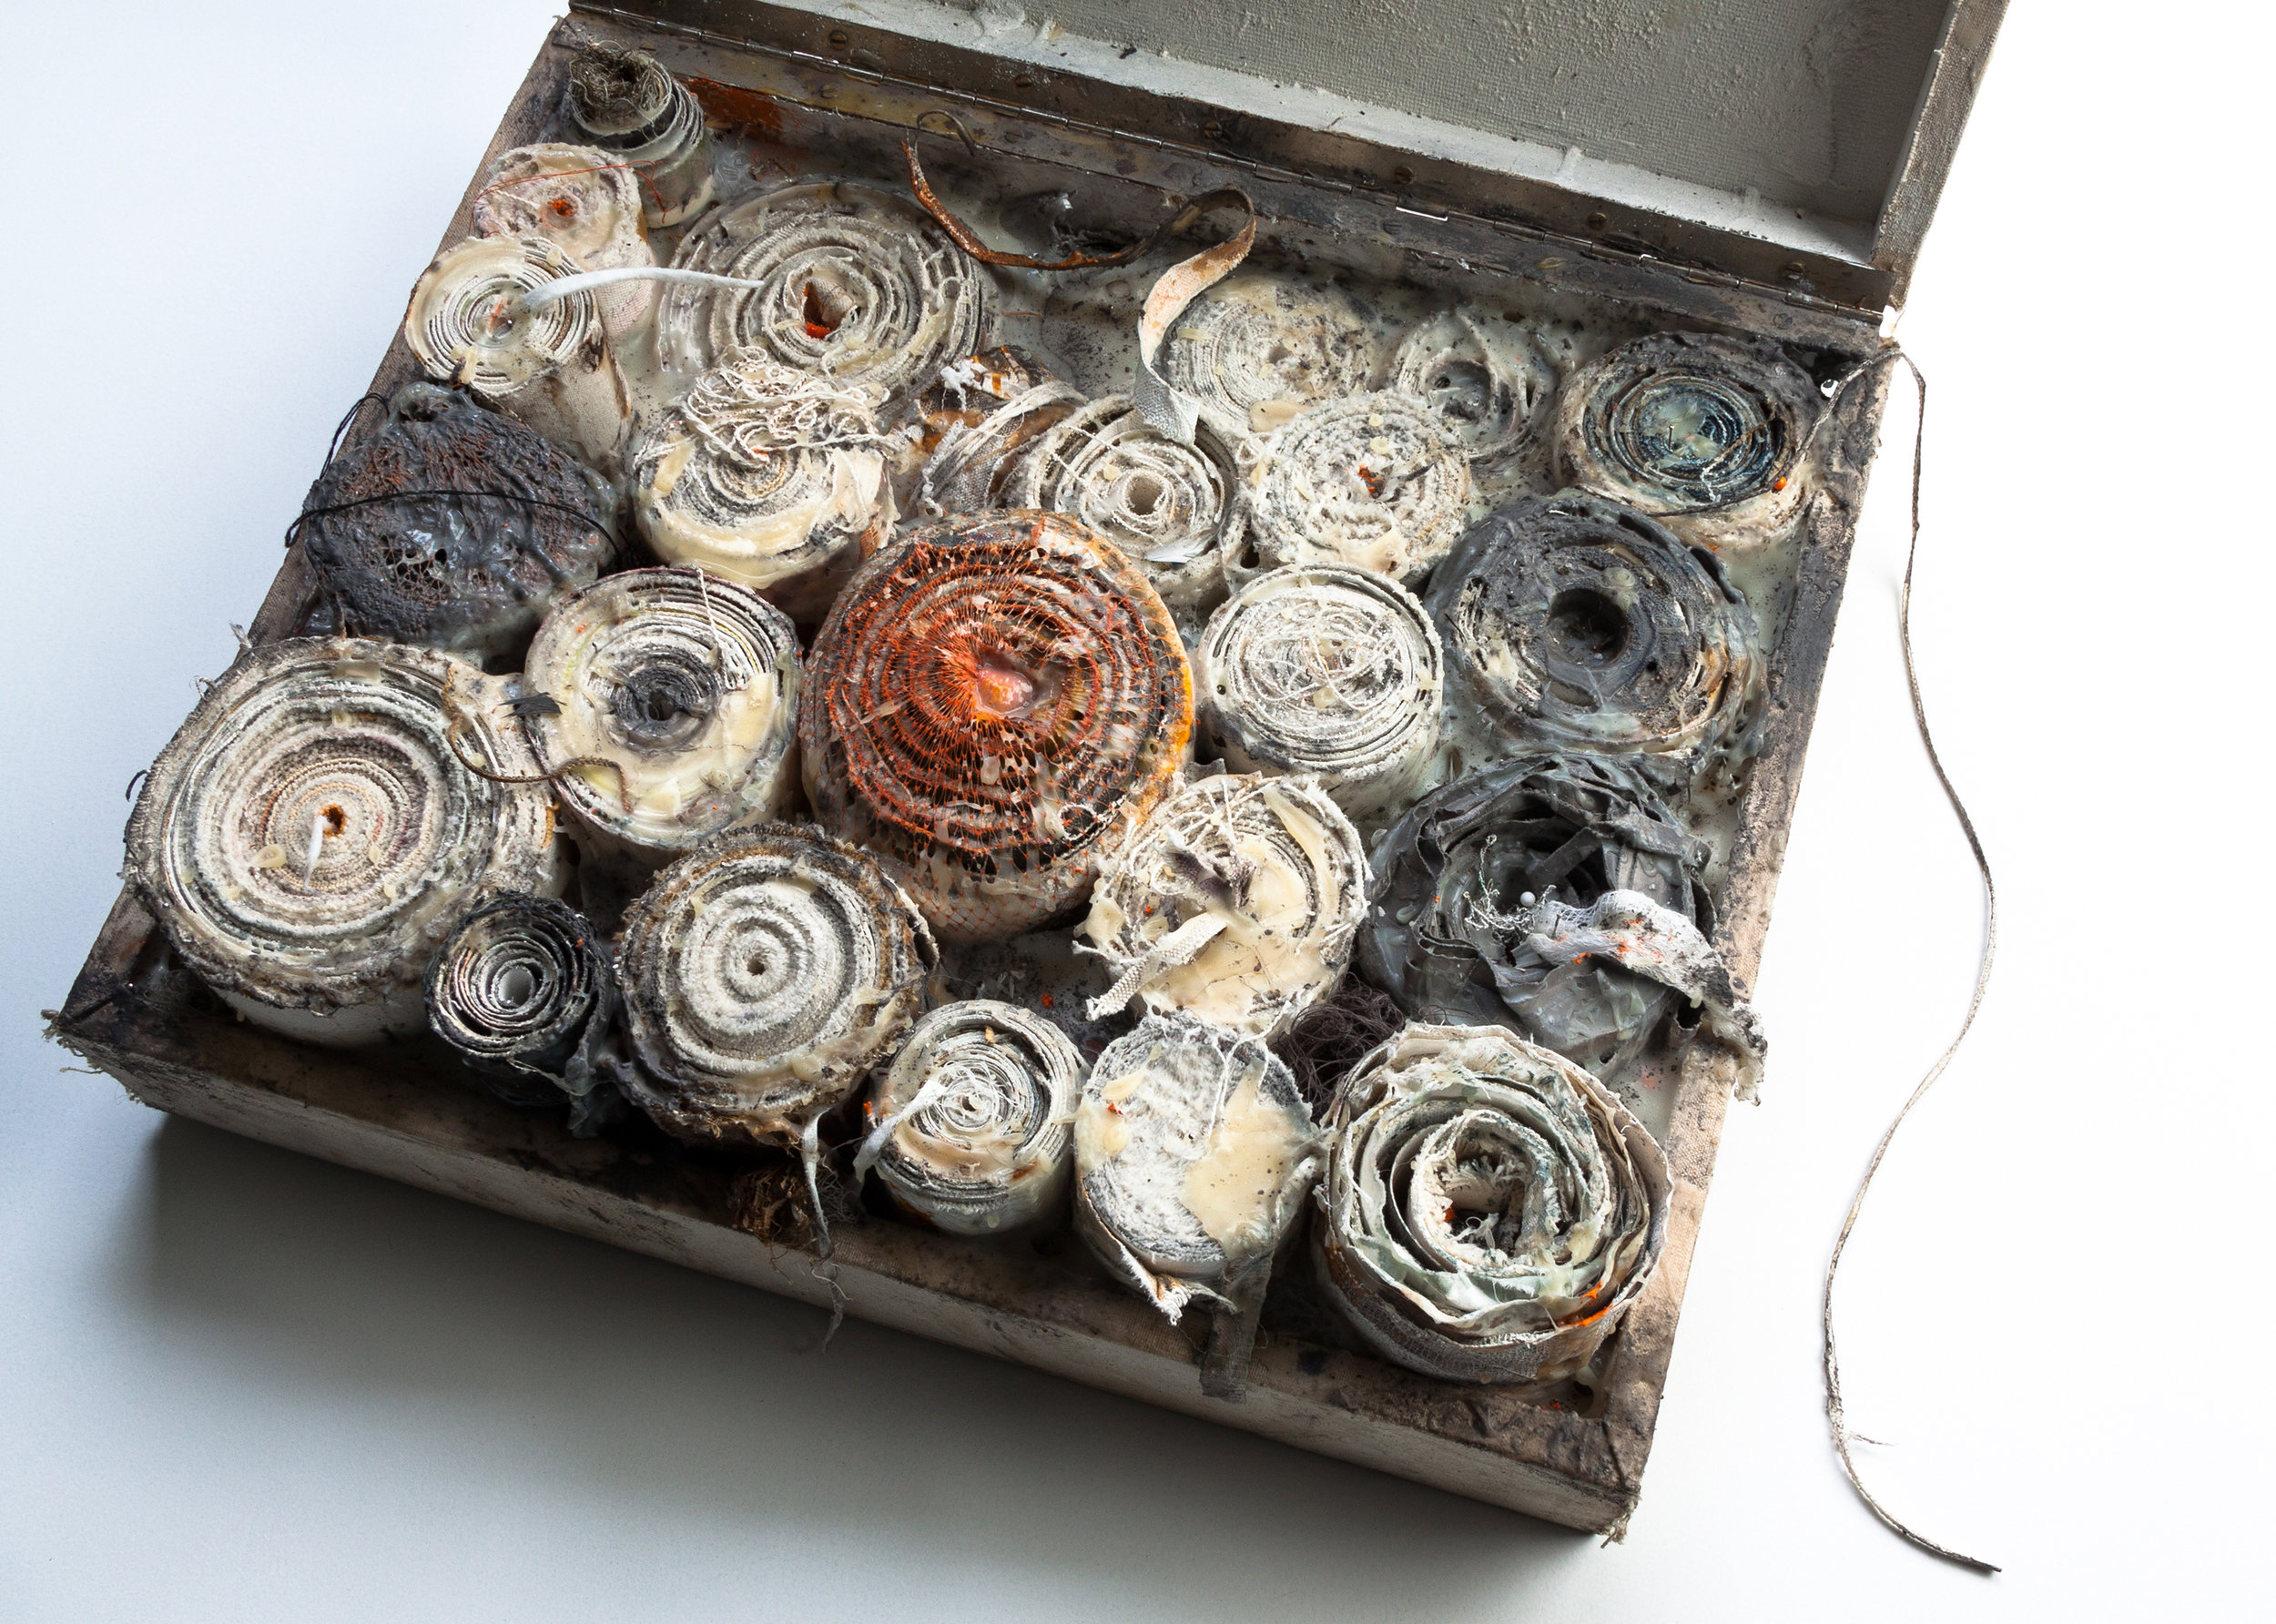 Scrolls in a box. Oil, acrylic pigment, found muck, wood glue, felt, cotton thread, pins, canvas, wooden box covered in canvas, metal stand. 170 x 43,5 x 35,5 cm